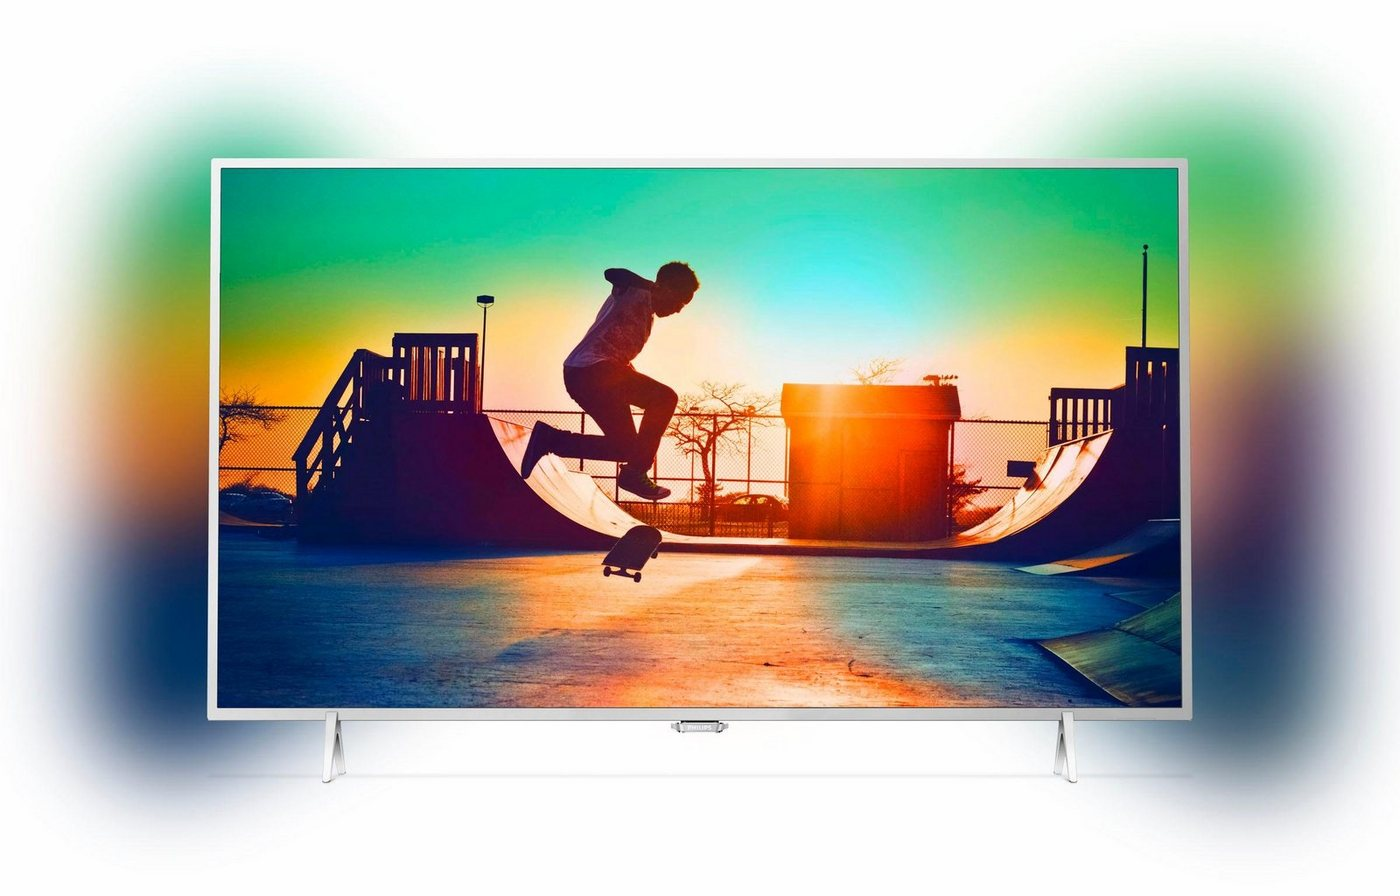 Philips 32PFS6402/12 LED-Fernseher (80 cm/32 Zoll, Full HD, Smart-TV, USB-Recording) - Philips